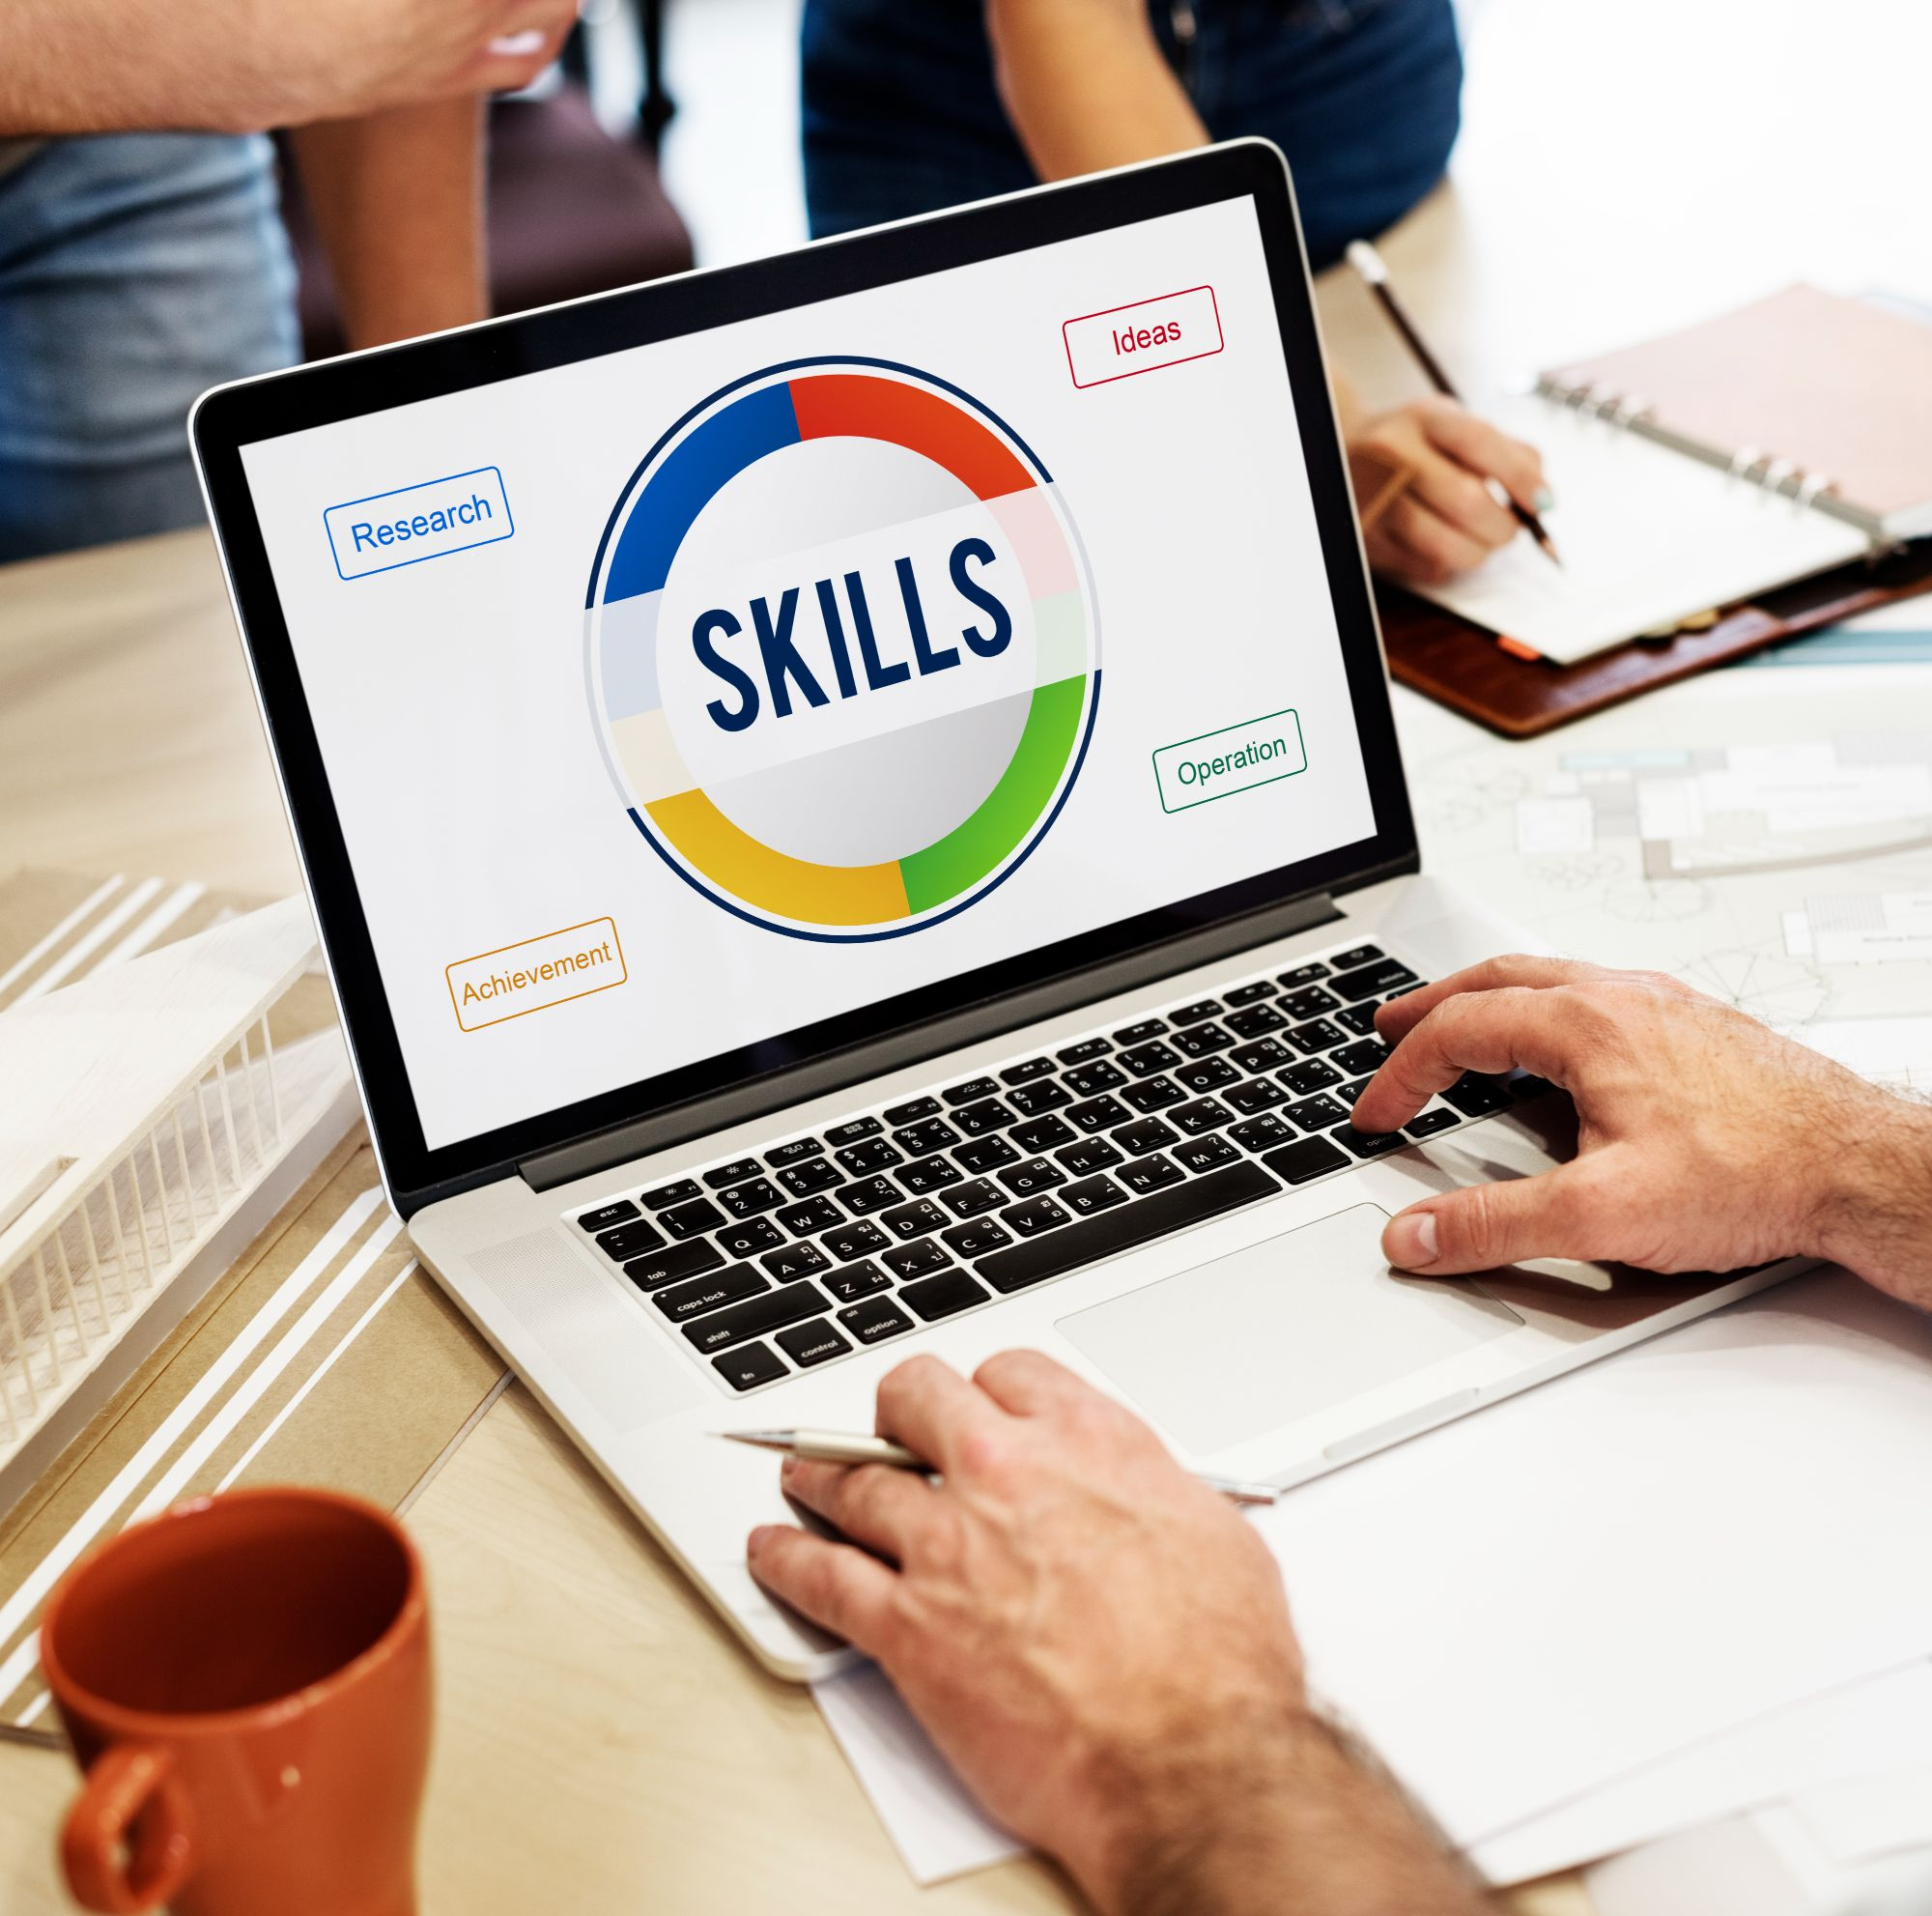 online-learning-skills-concept-laptop-screen